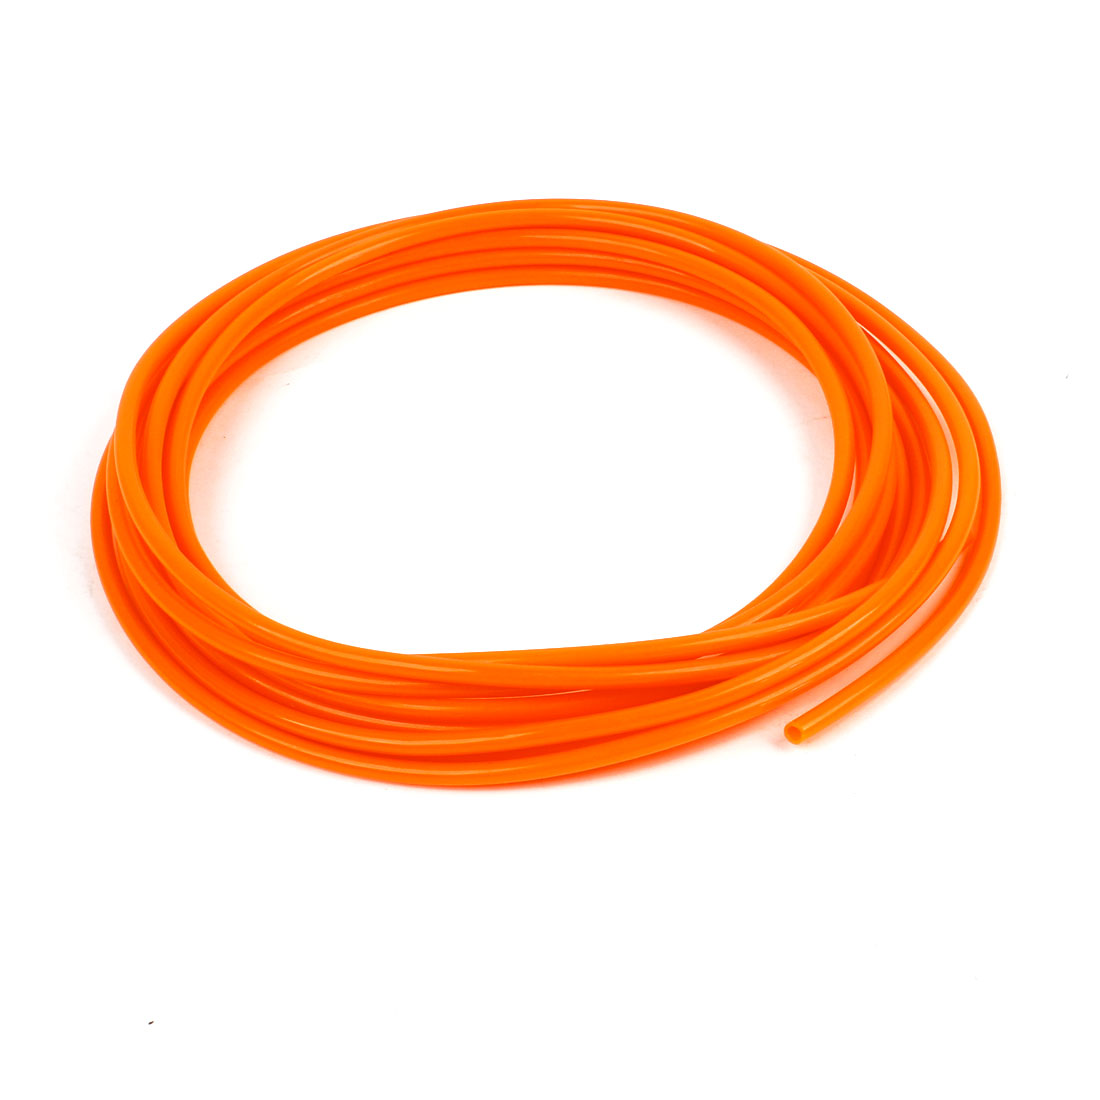 Orange 5 Meters 4mm OD 2.5mm ID 0.75mm Wall Thickness PU Air Hose Pipe